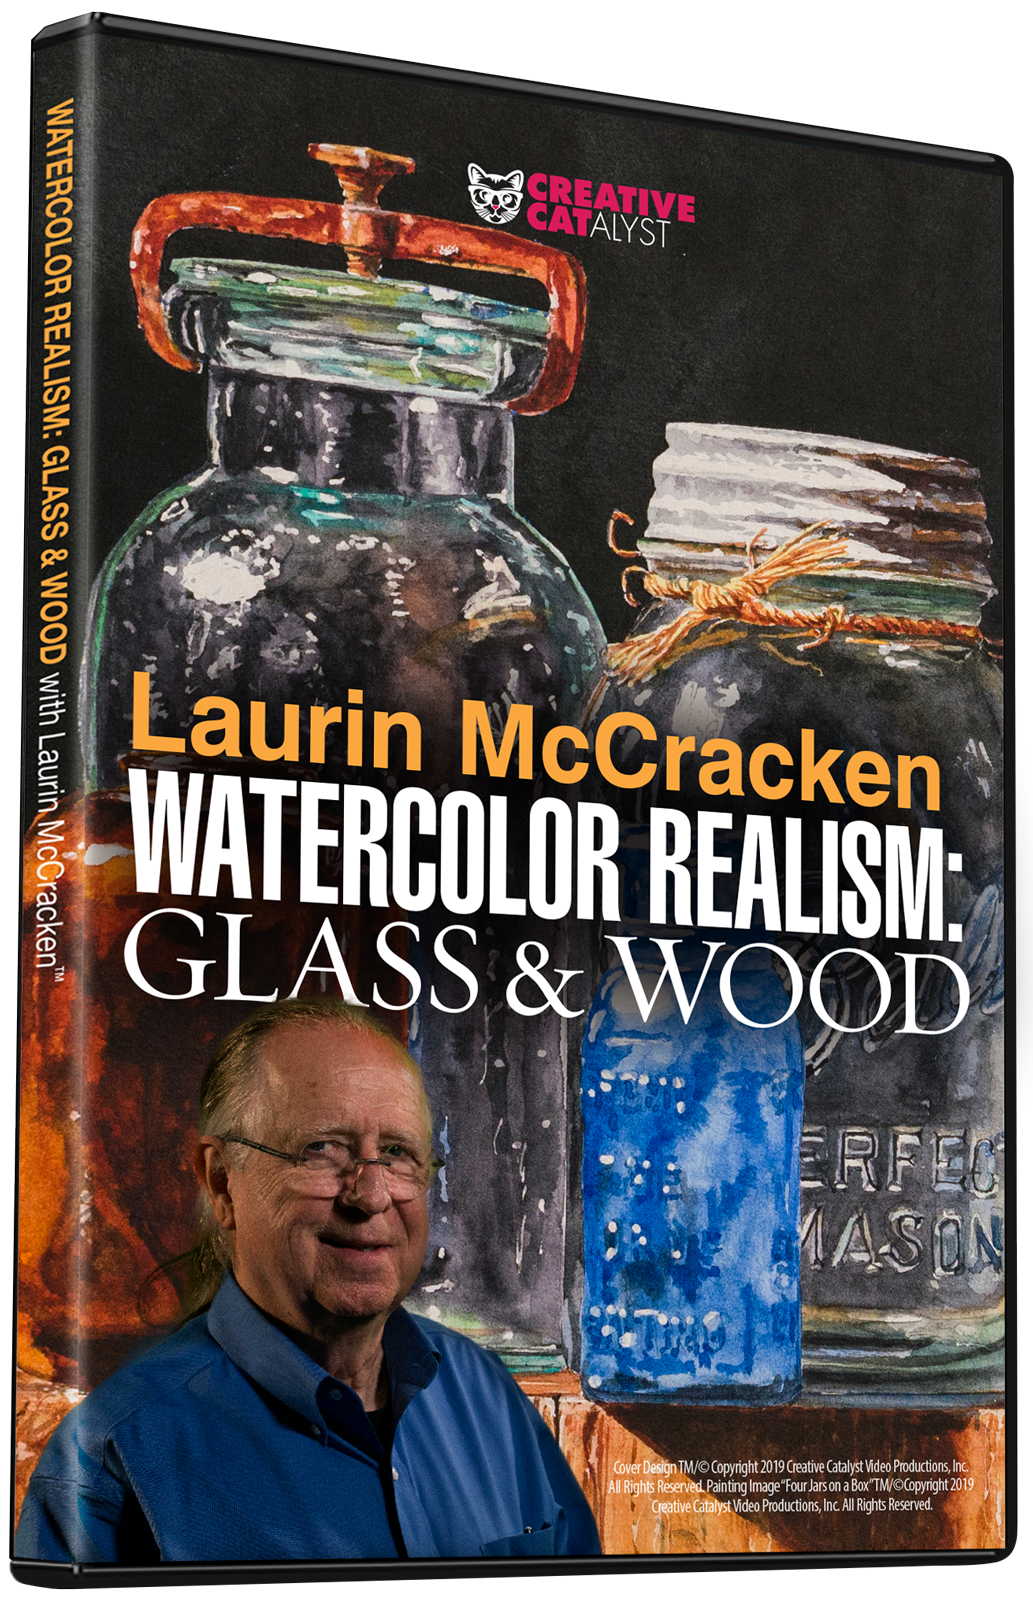 Laurin McCracken: Watercolor Realism: Glass & Wood